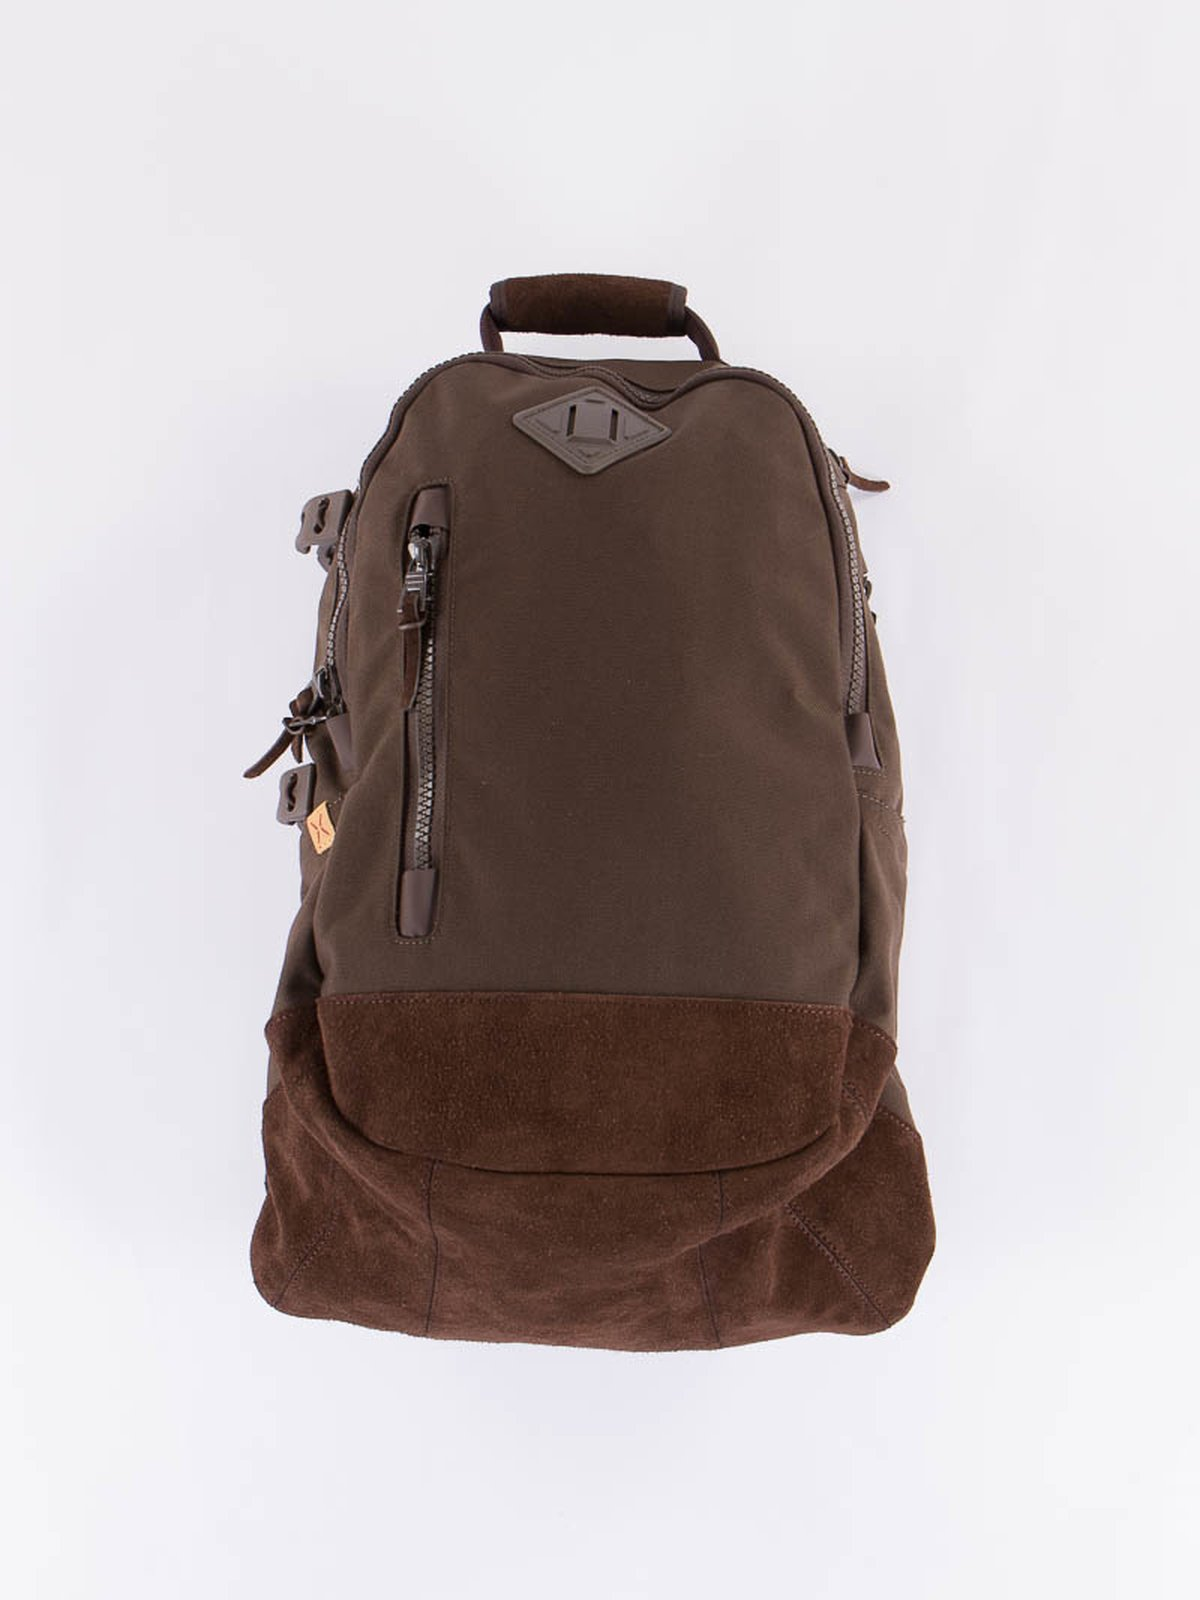 Brown 20L Cordura Backpack - Image 1